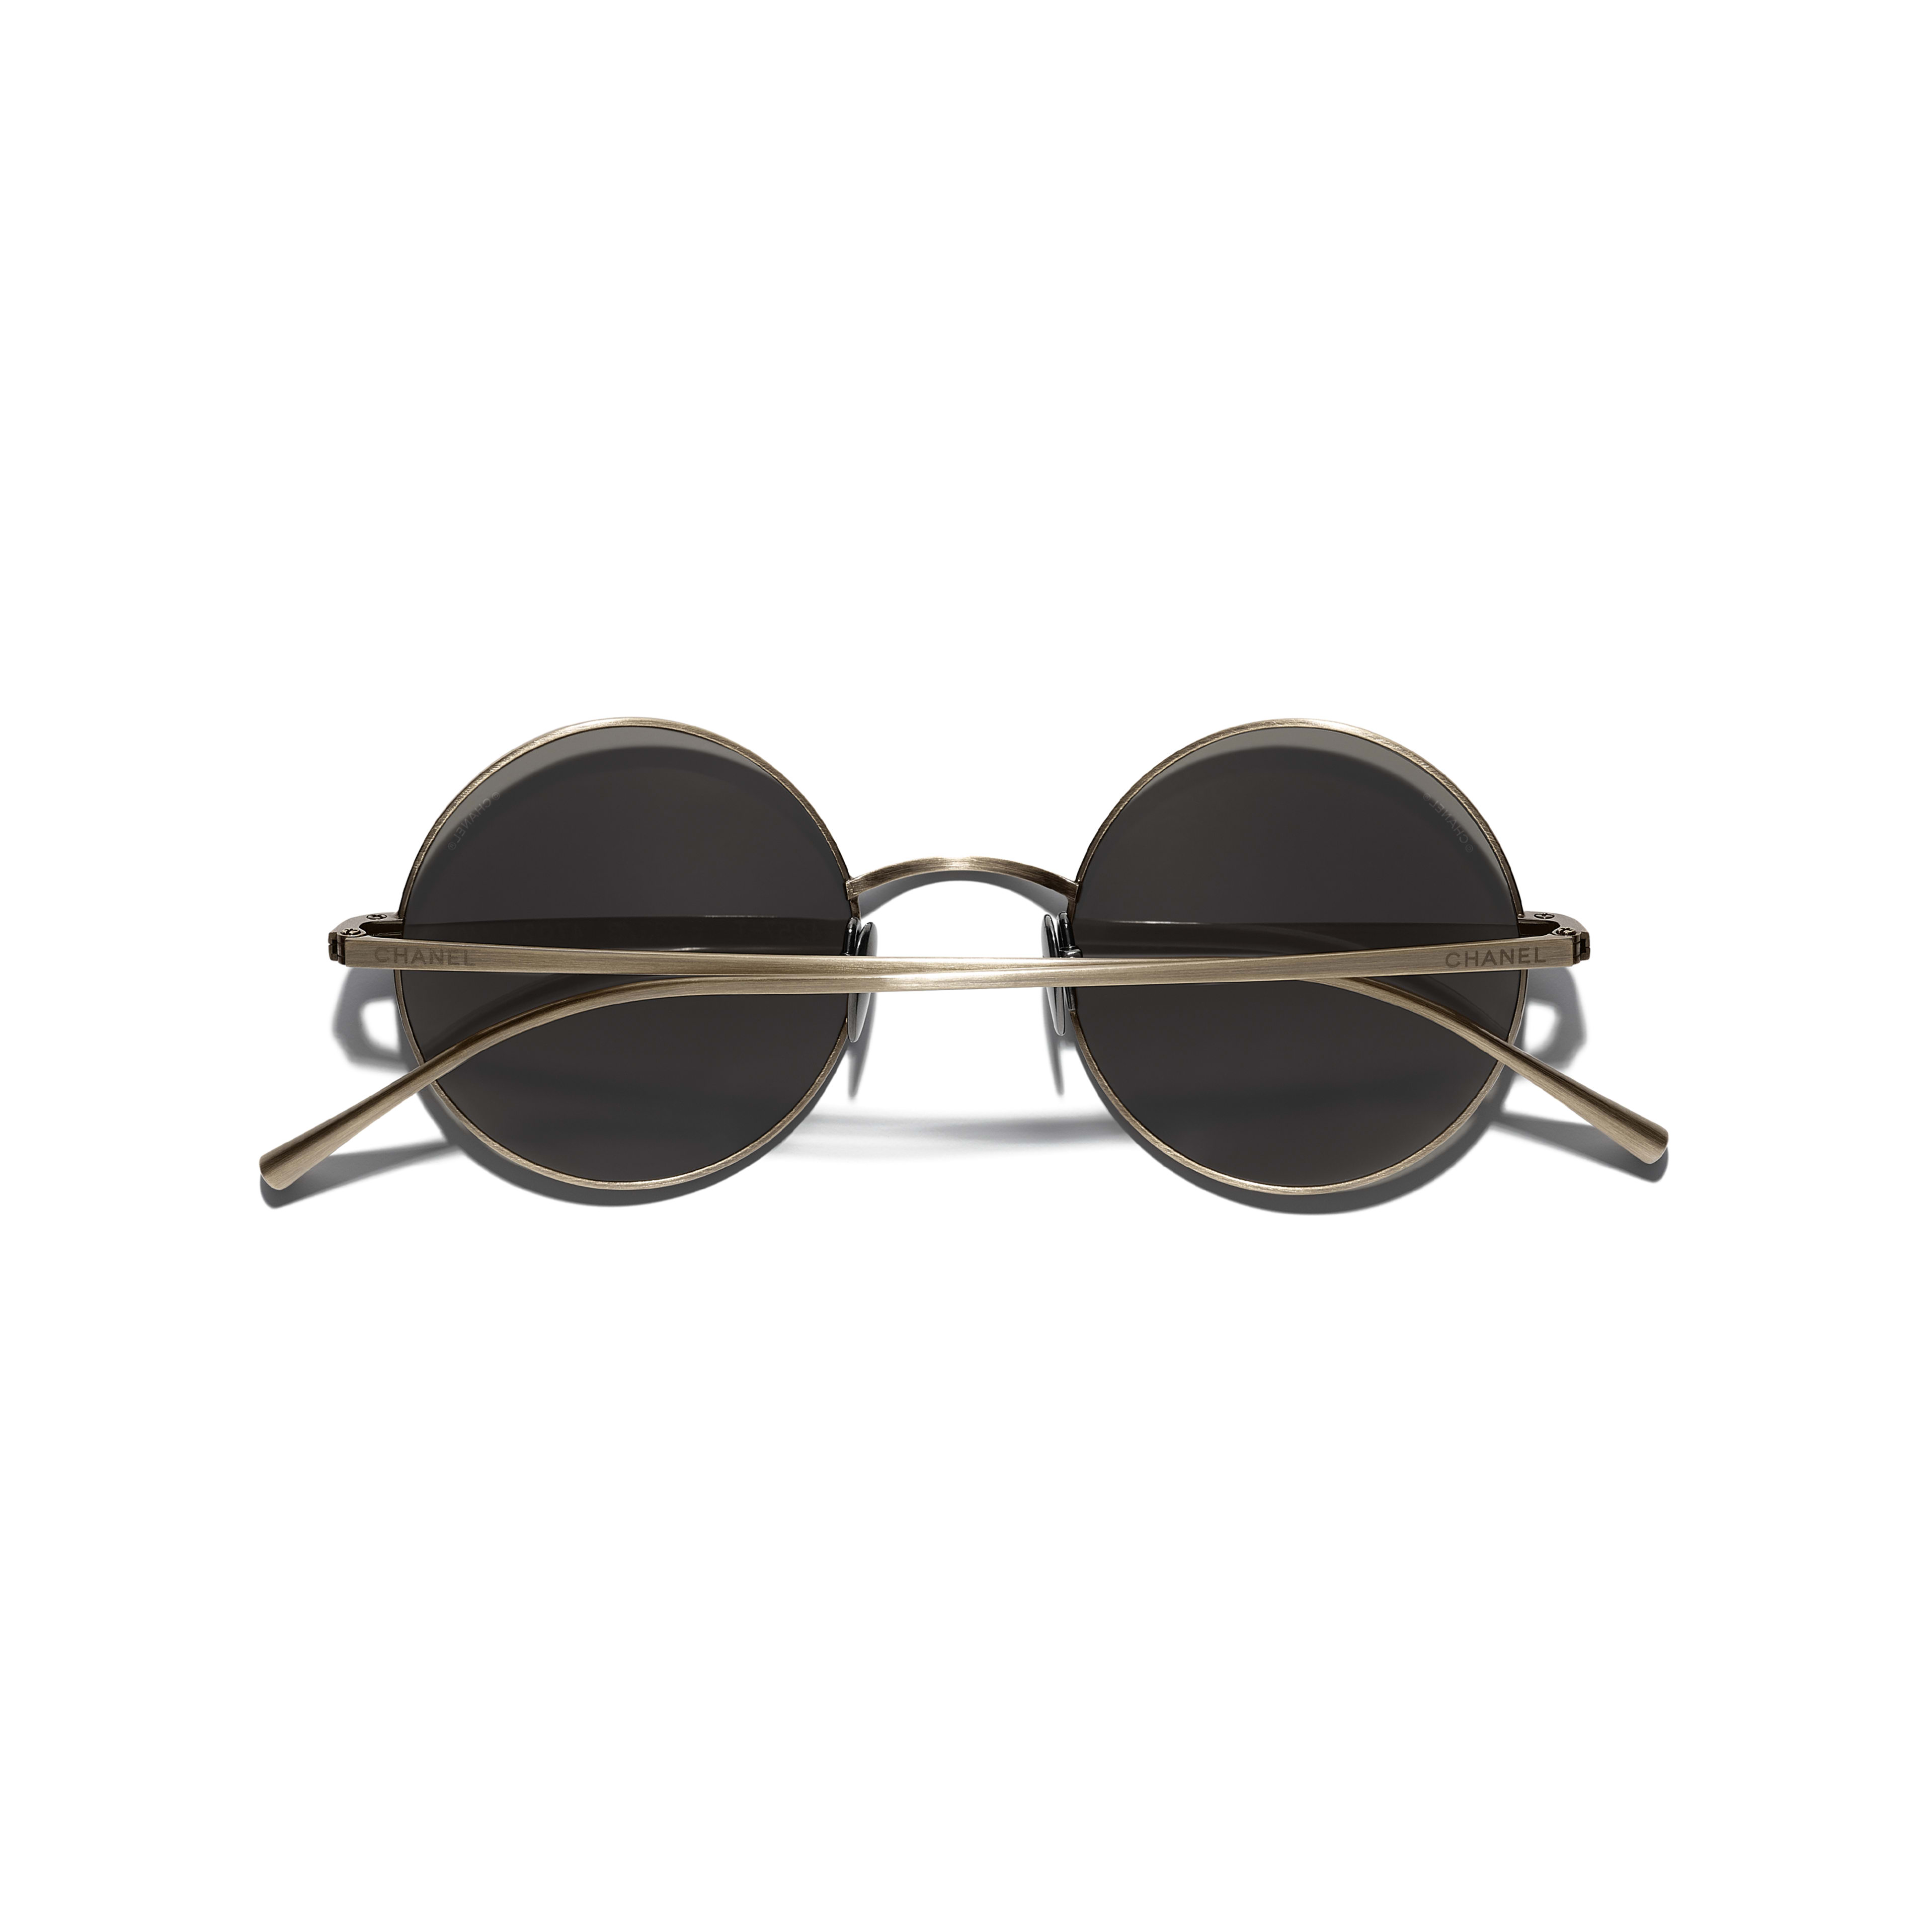 Round Sunglasses - Gold - Titanium - CHANEL - Extra view - see standard sized version